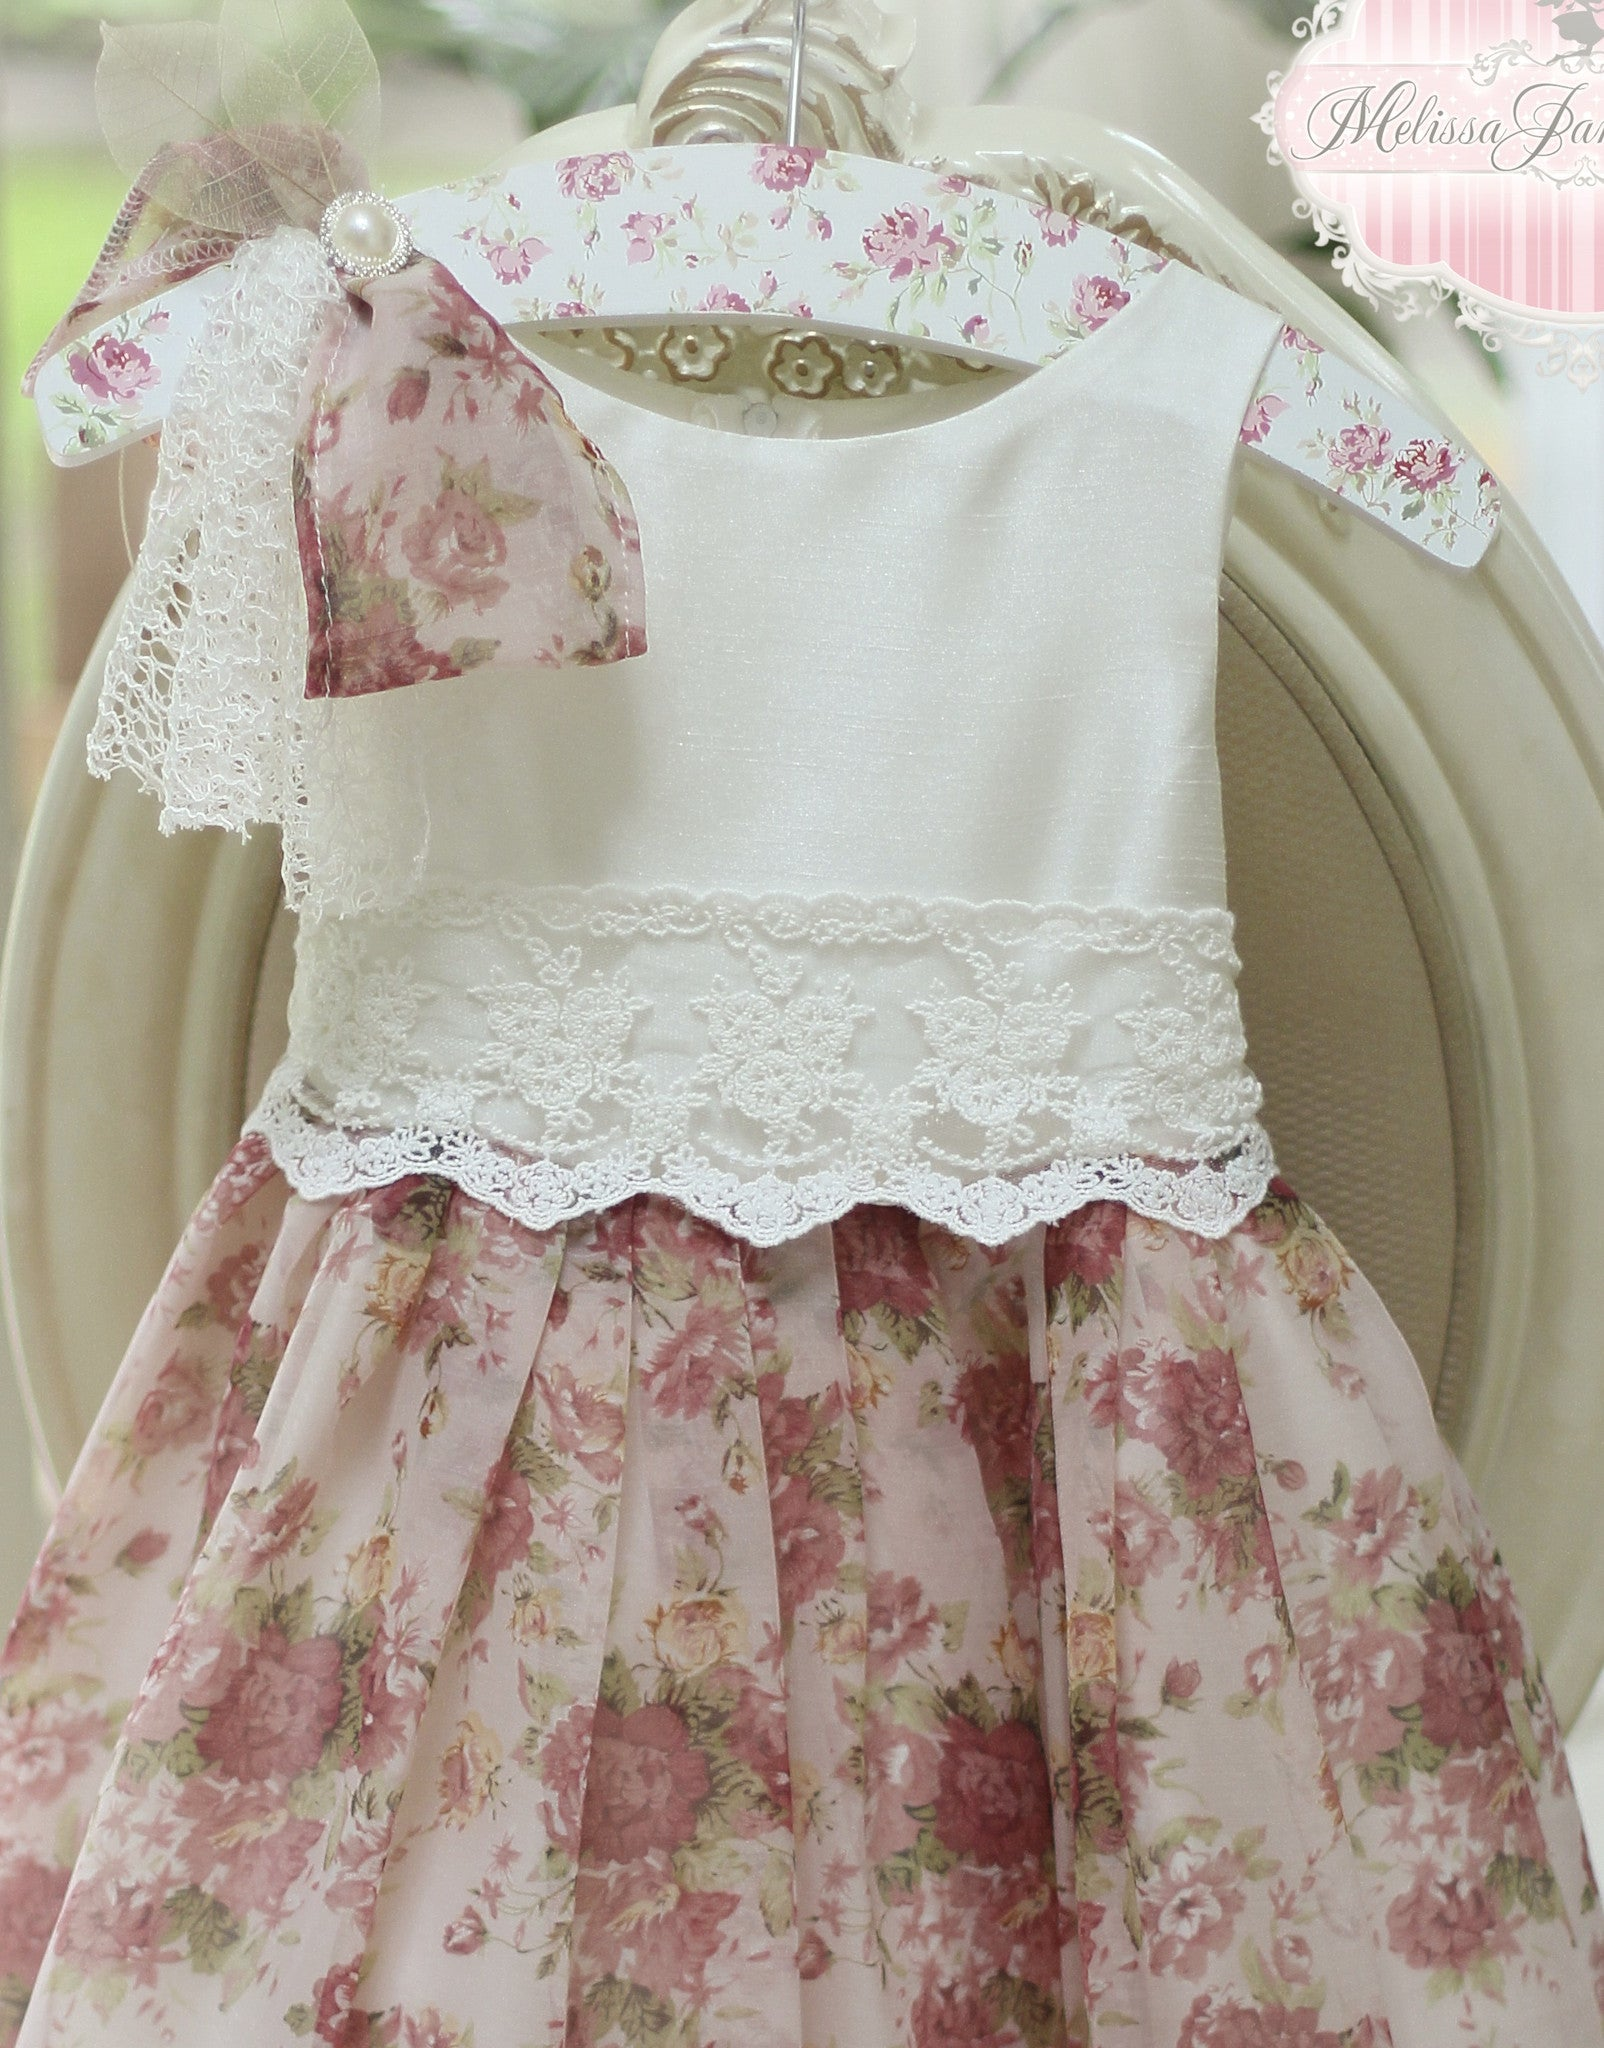 Vintage Flower Girl Dresses with Feathers